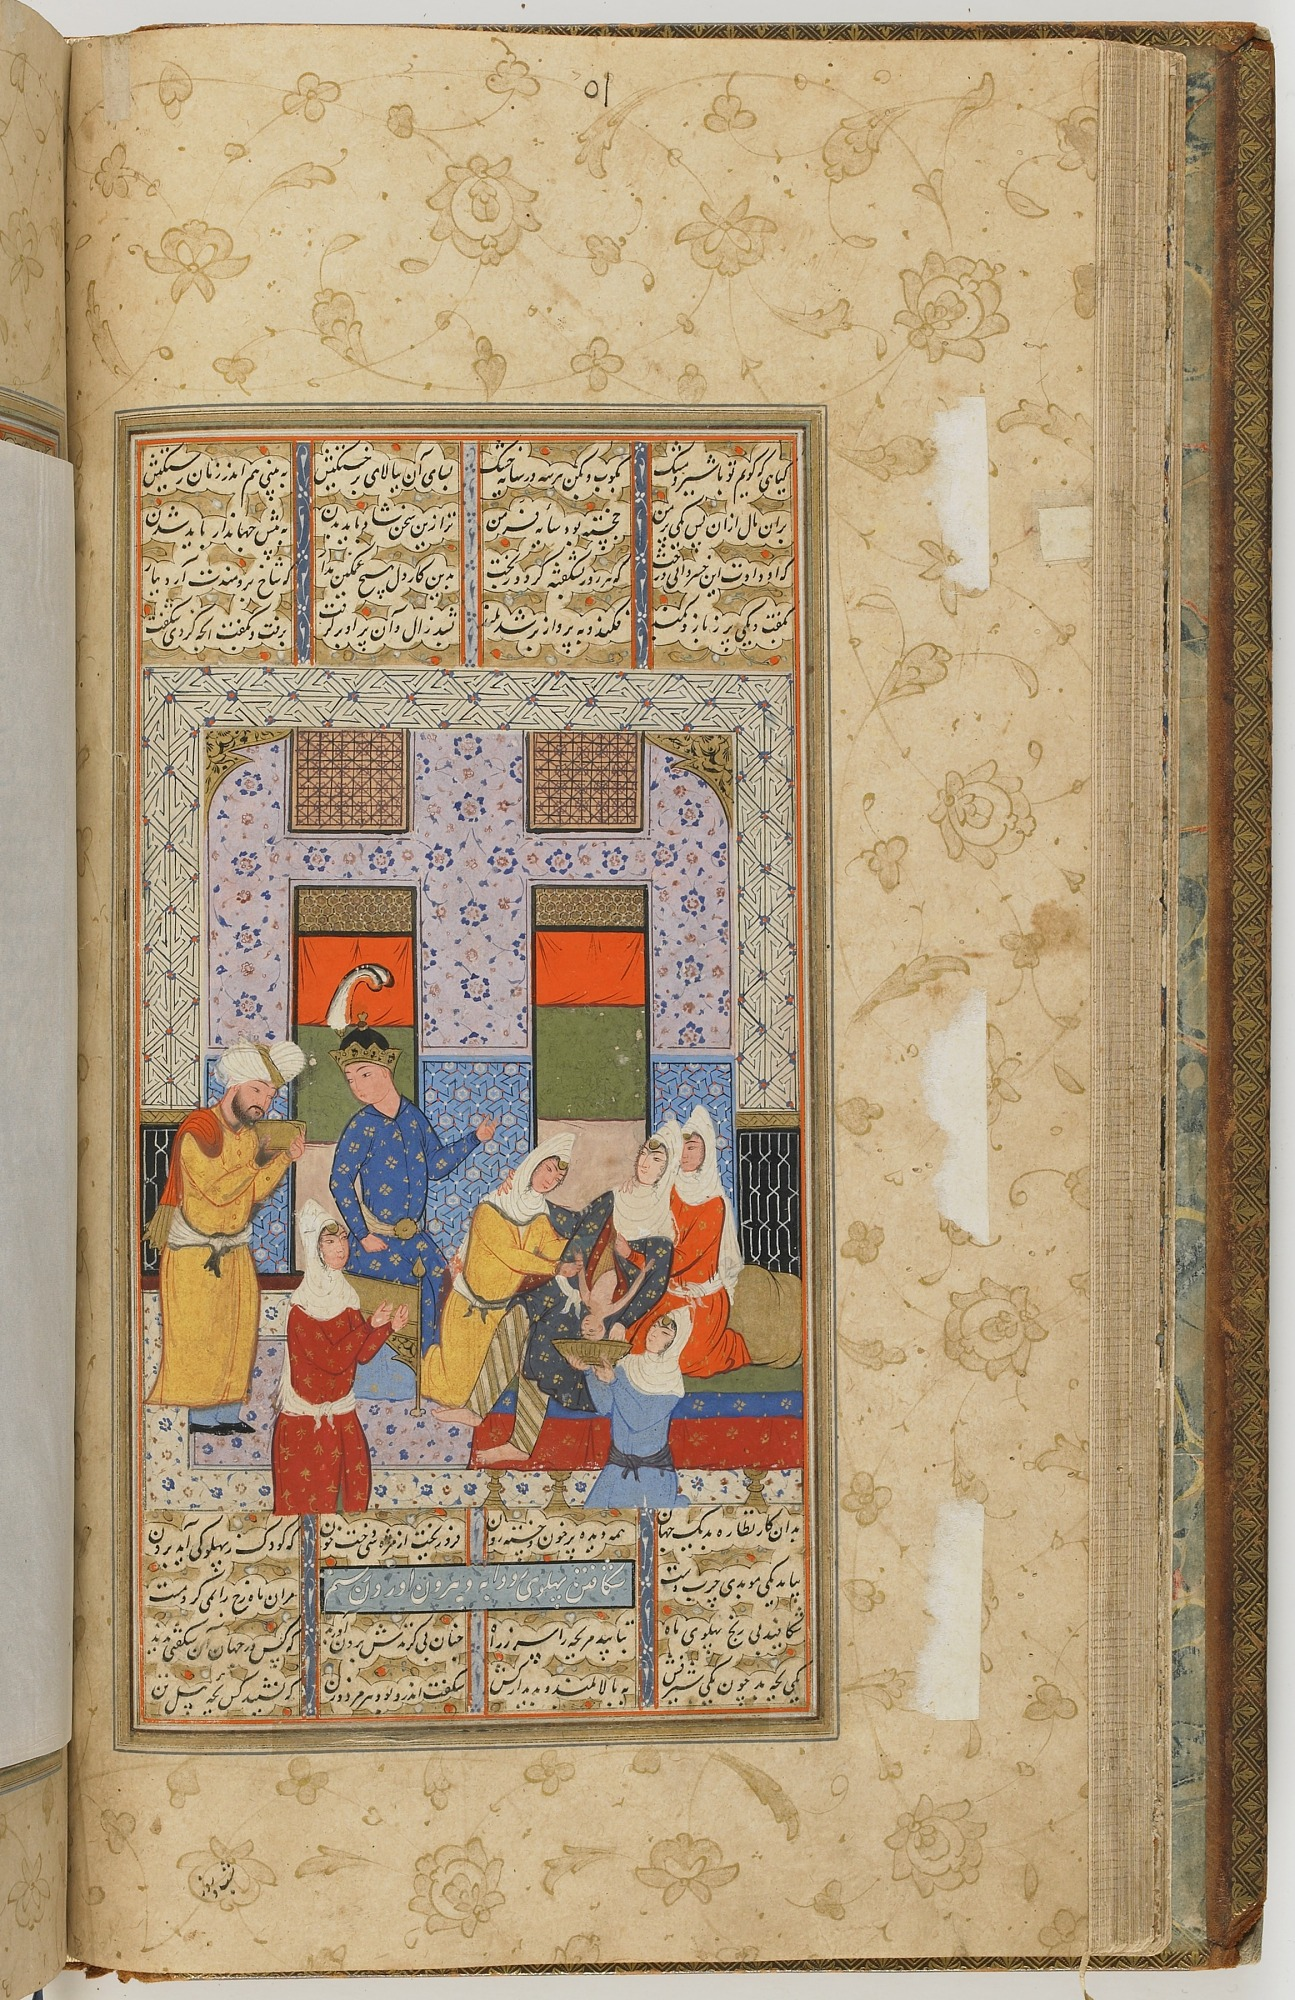 folio 51 verso: The Shahnama (Book of kings) by Firdausi (d. 1020)